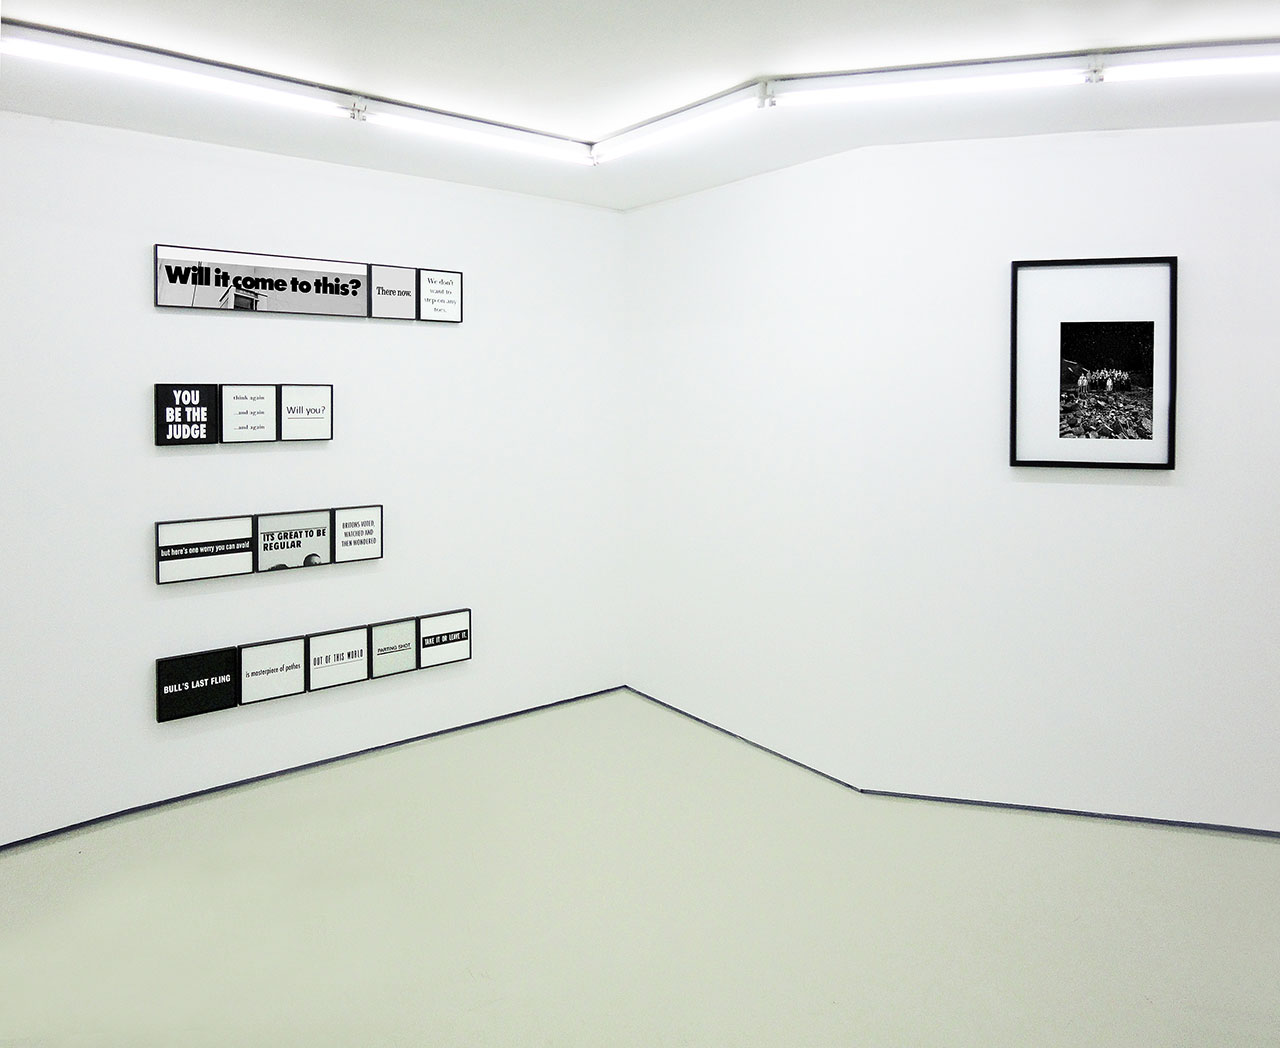 Maria Kriara, The Pawnshop, Installation View. Courtesy of CAN Christina Androulidaki gallery and the artist.